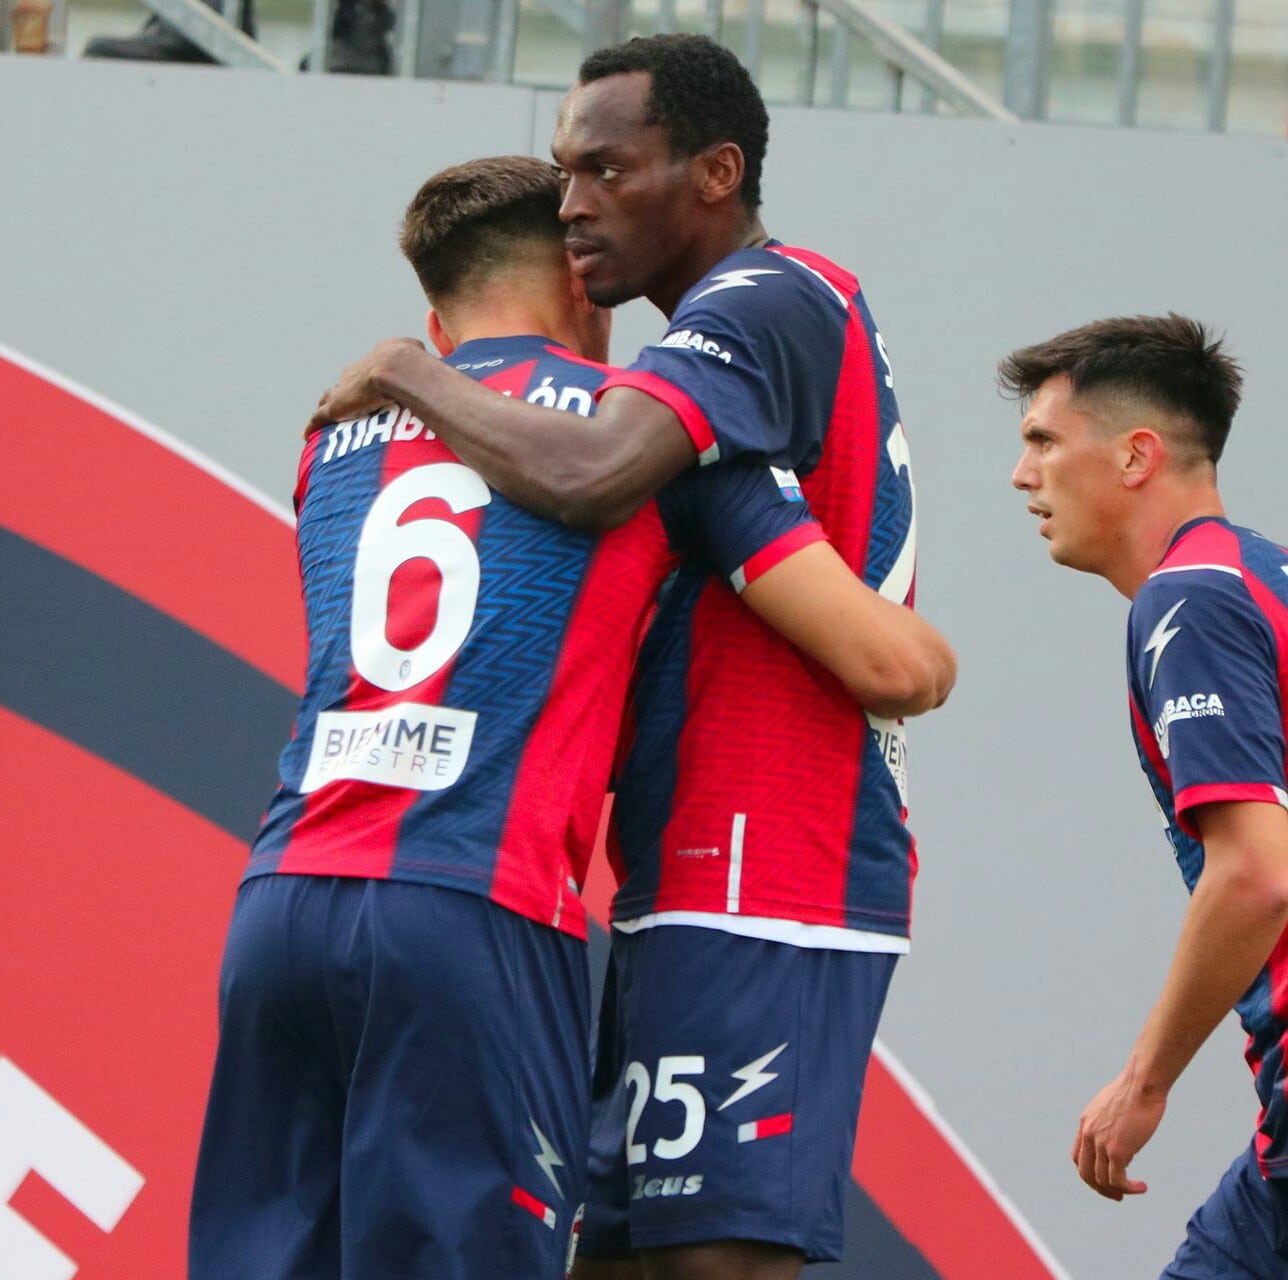 Serie A: Nwankwo's Brace Helps Struggling Crotone Beat Torino, End Winless Run